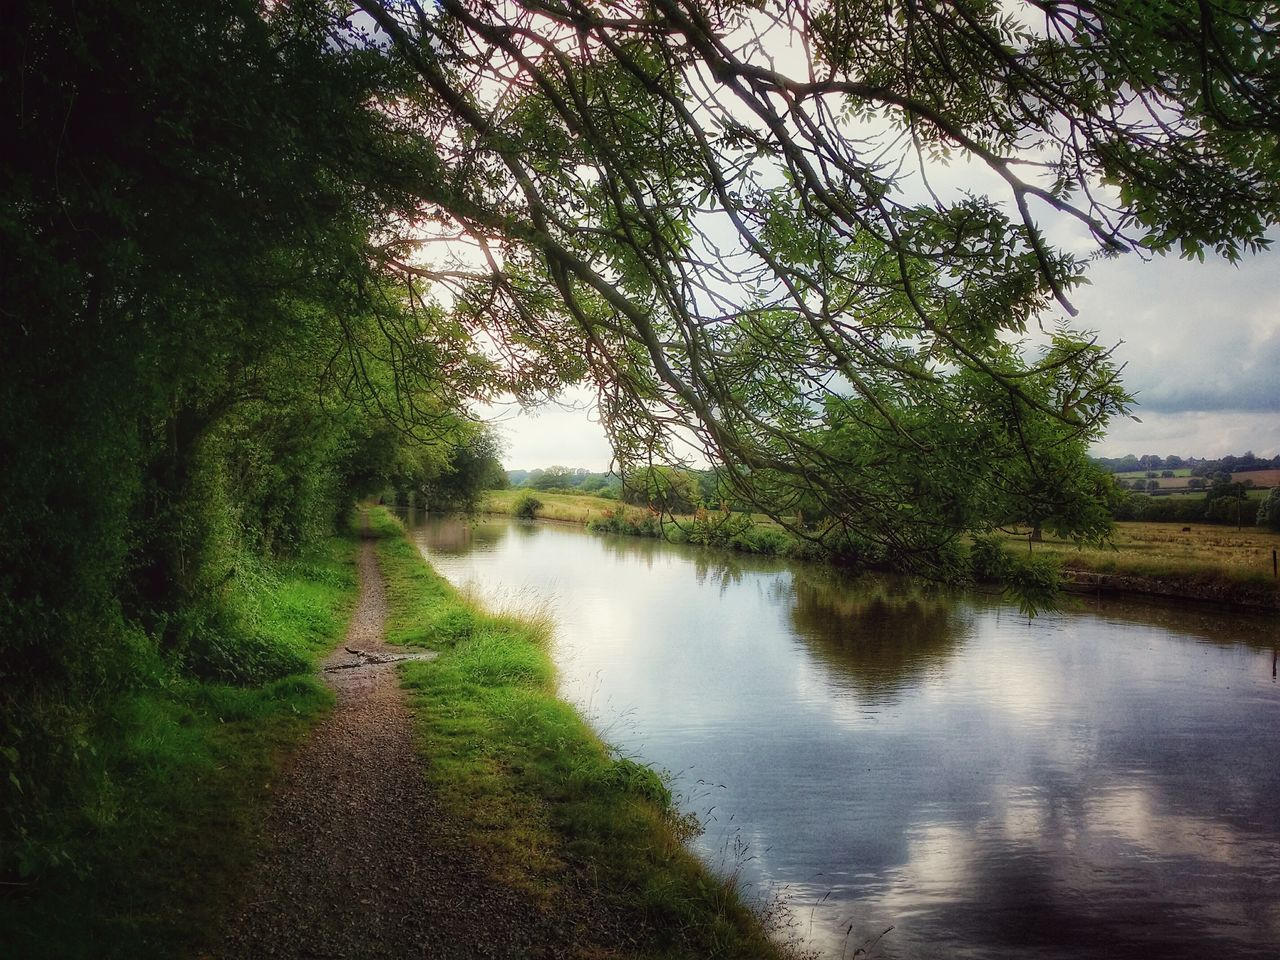 tree, nature, tranquil scene, tranquility, beauty in nature, day, scenics, water, grass, outdoors, no people, the way forward, landscape, lake, sky, growth